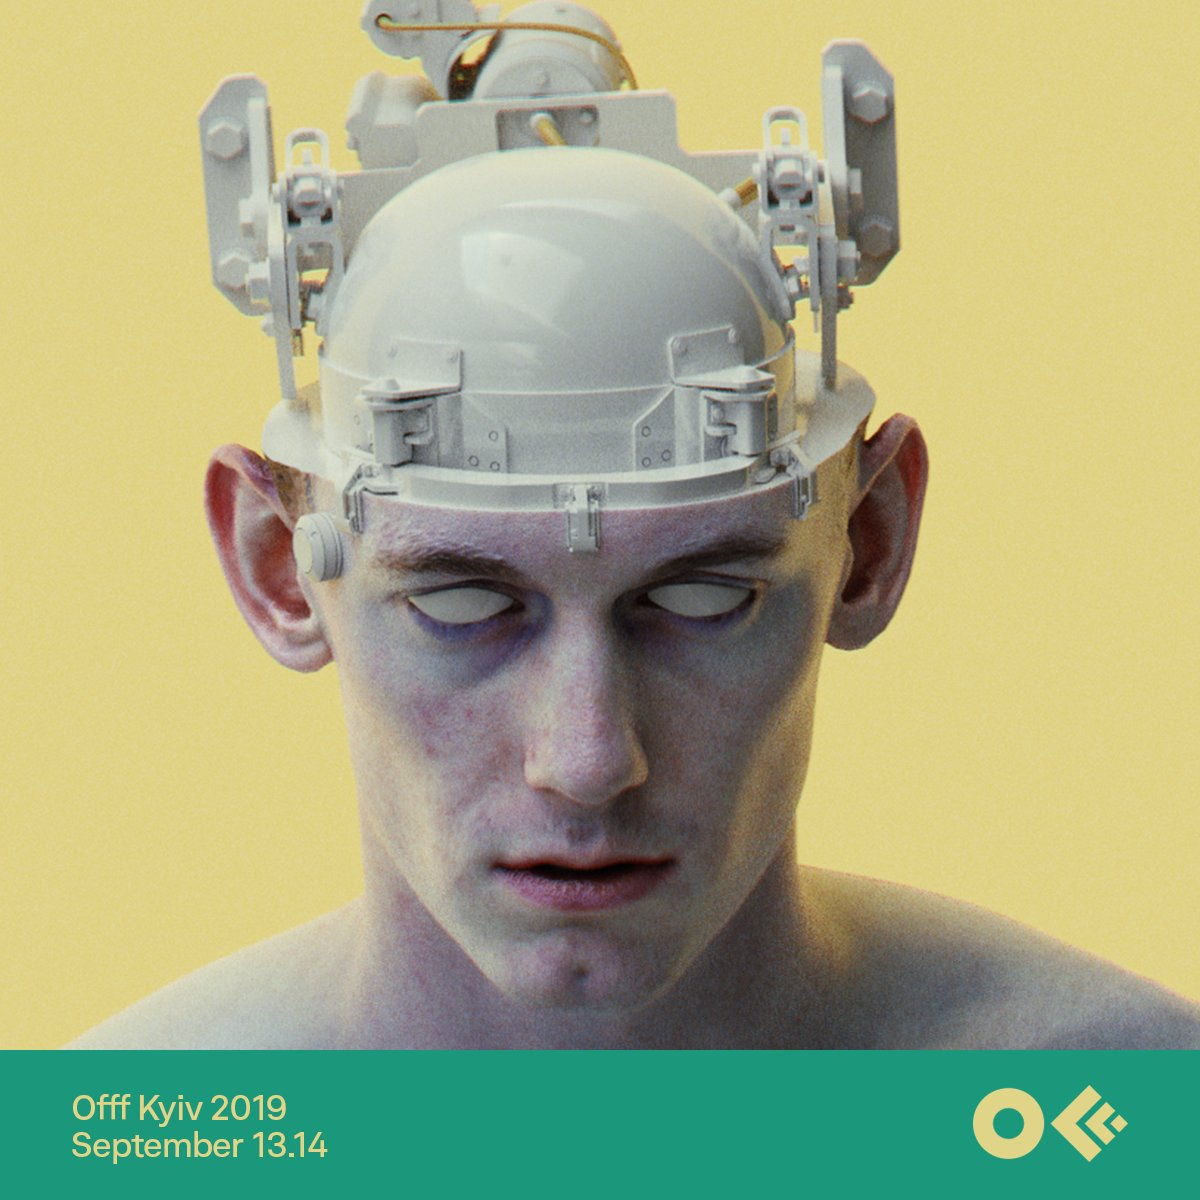 Yes, it's crazy. Crazy OFFFsome. 💥💥💥 @offfest is coming to Ukraine!!! @JoshuaDavis, @MillChannel, @breel_co, @its_a_living, Paloma Rincon this September in Kyiv!  Follow @kyivofff for updates and see ya!  Tickets: https://t.co/udFqHkK0zy https://t.co/viIYFchMrn